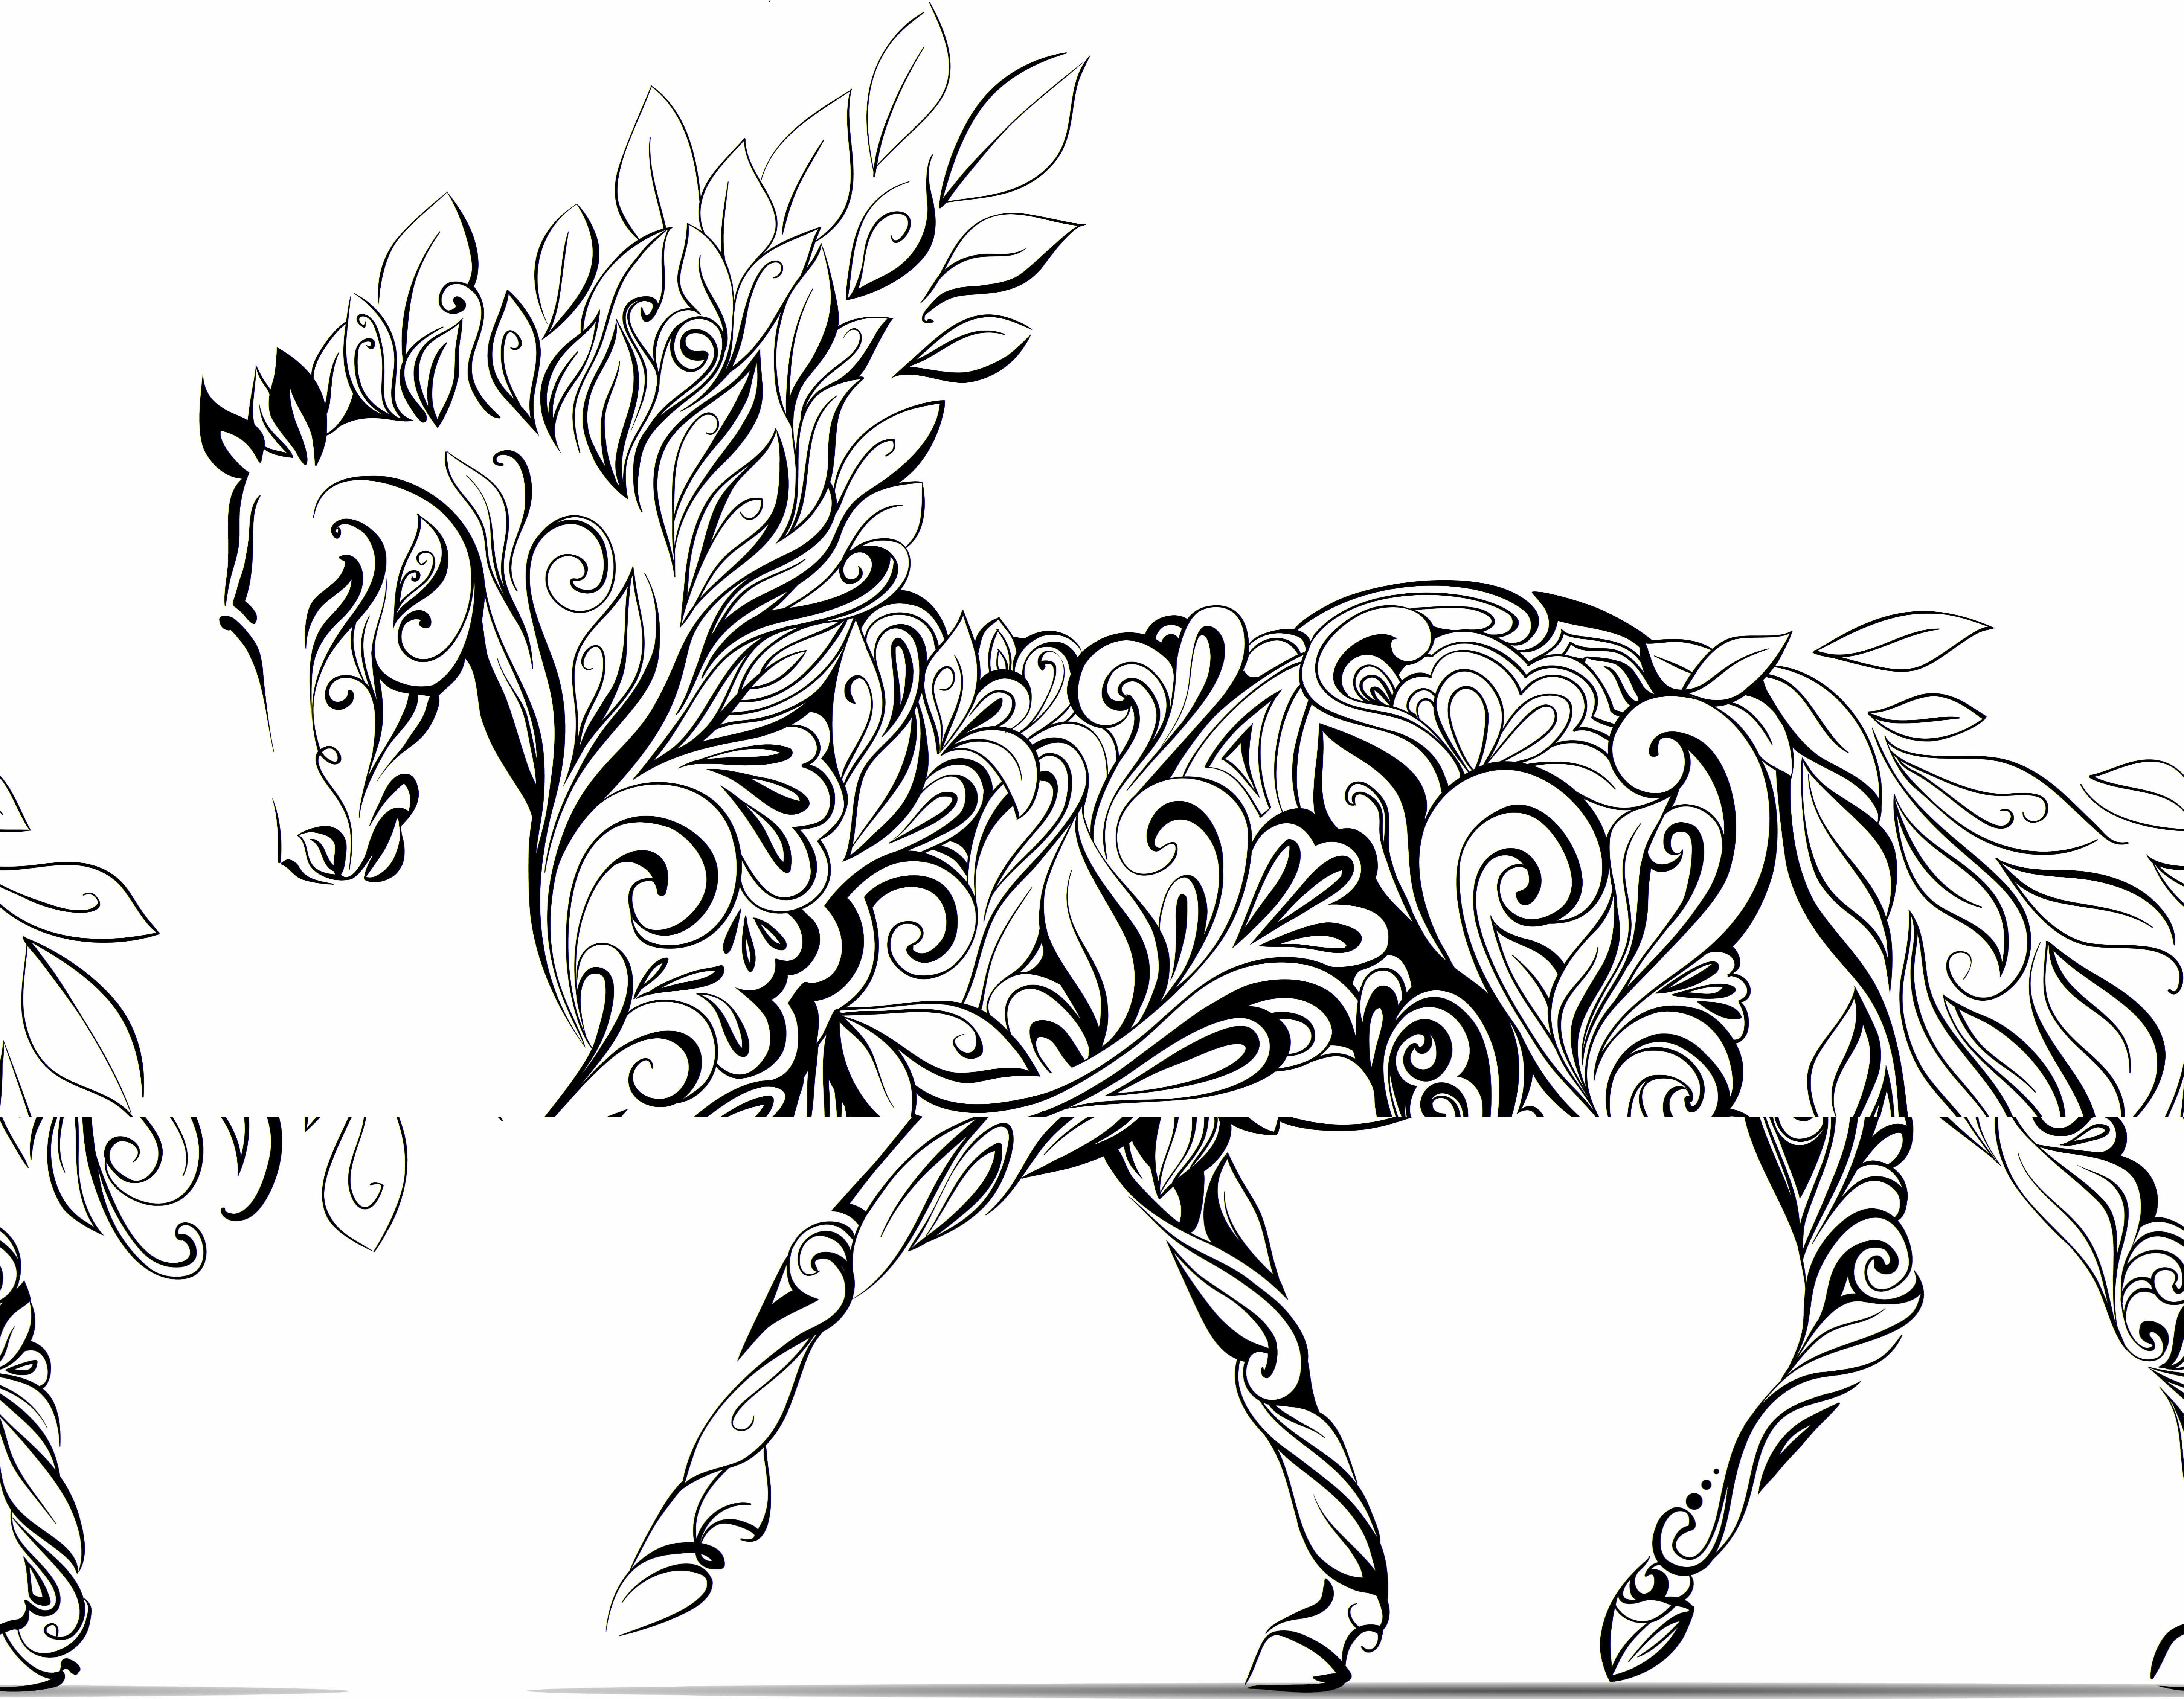 Zentangle Horse Coloring Pages at GetDrawings.com | Free for ...